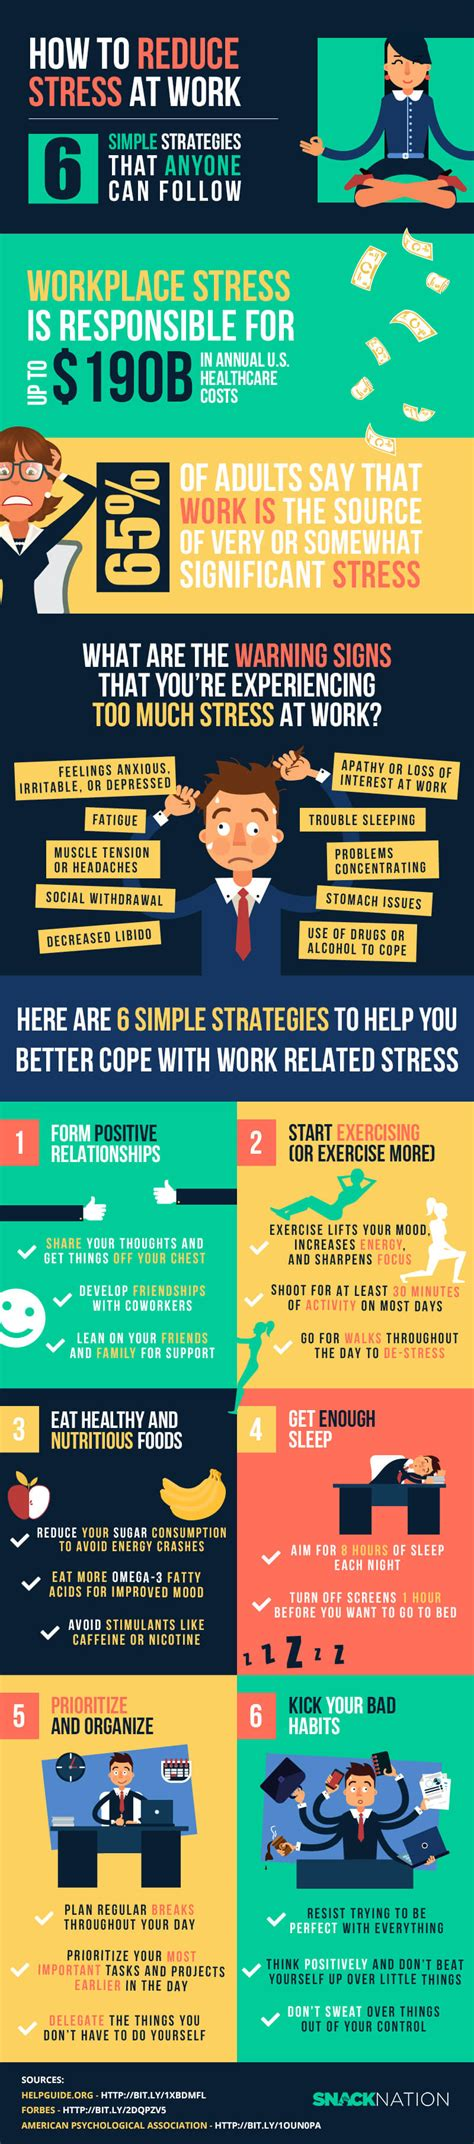 how to downsize how to reduce stress at work 6 simple strategies anyone can follow